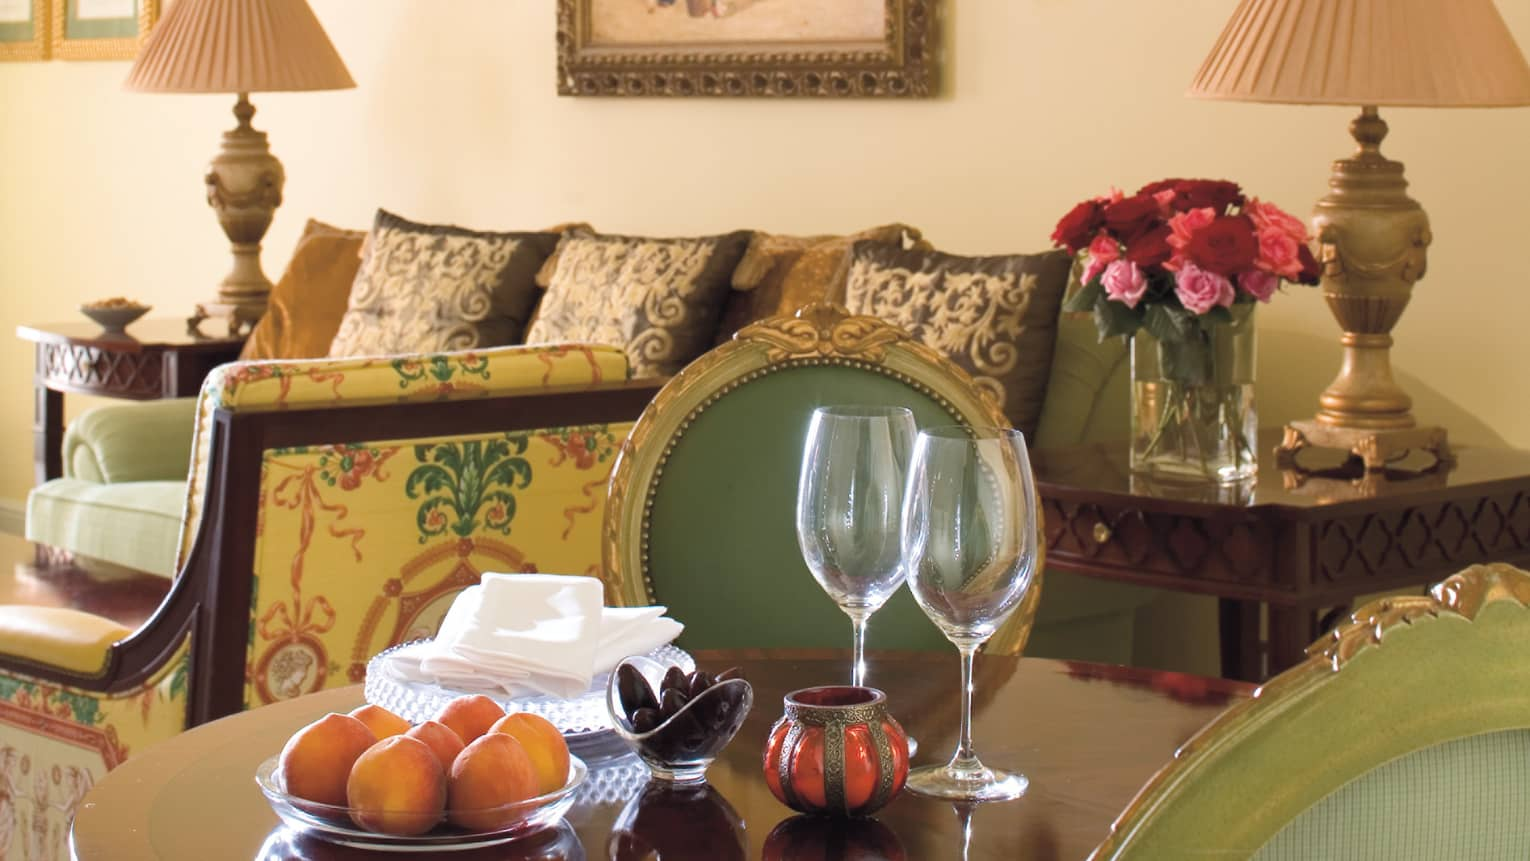 Close-up of wood dining table, wine glasses, bowl with oranges in Four Seasons Executive Suite